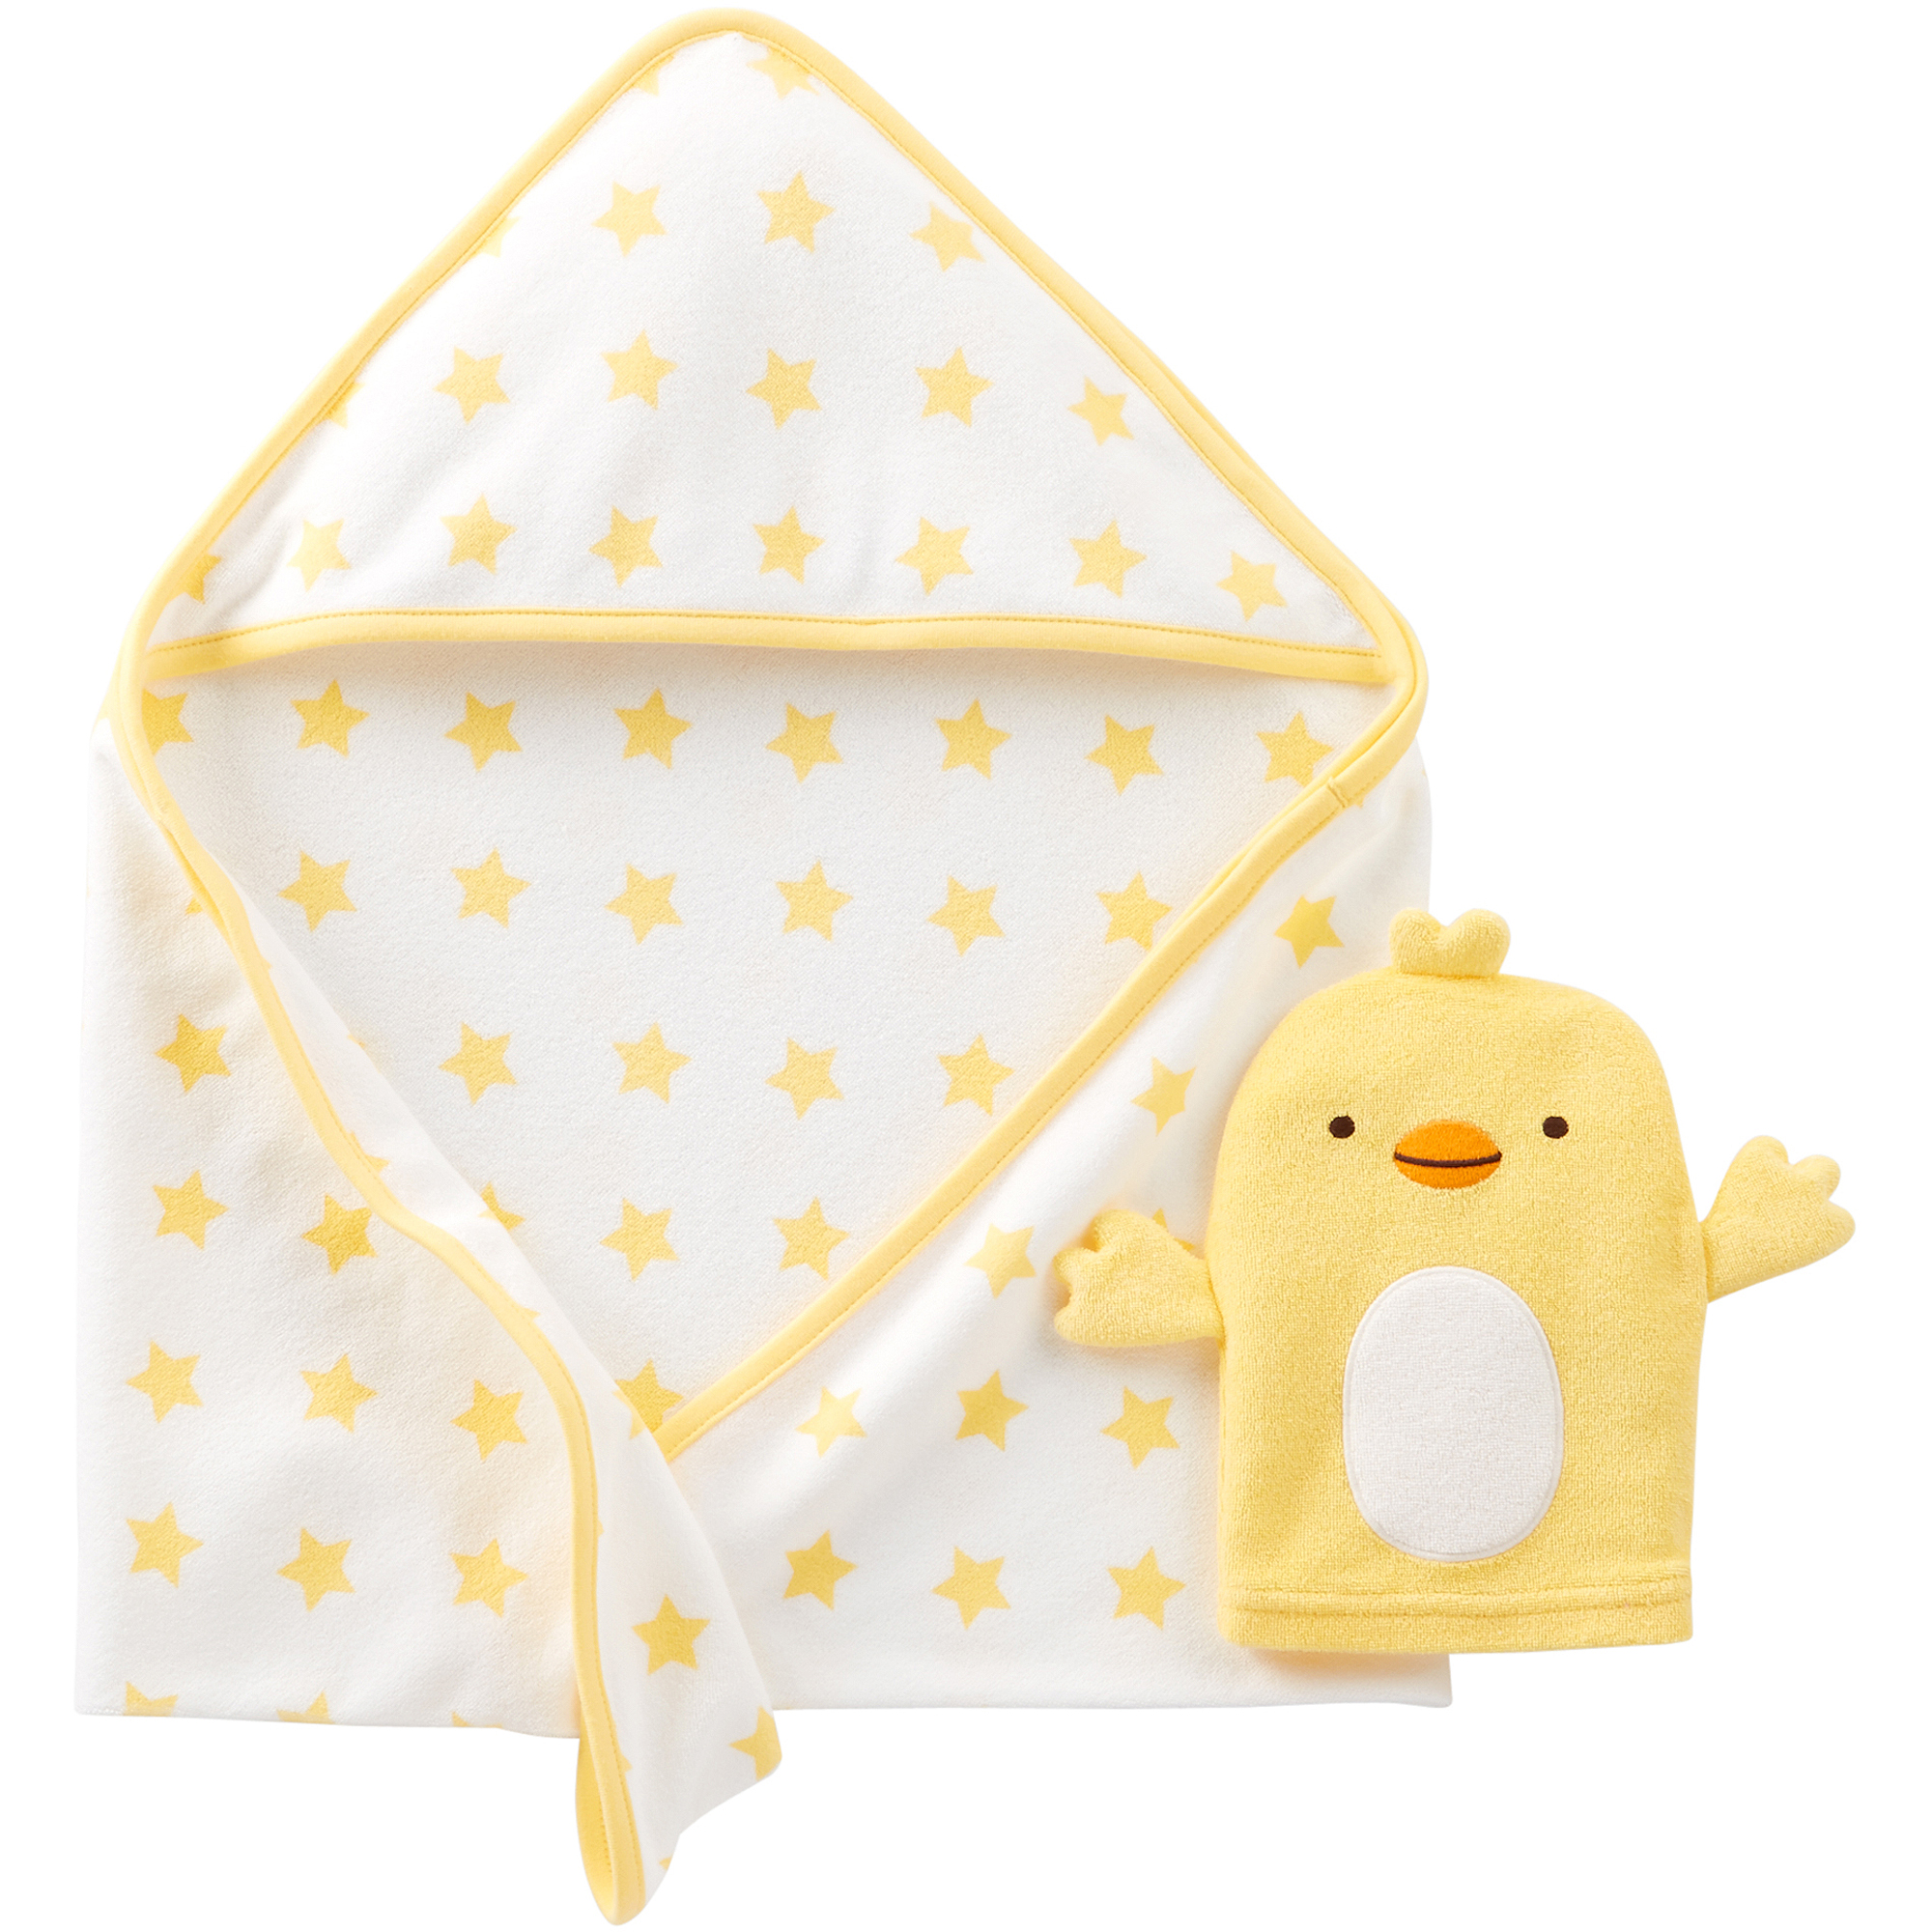 Child of Mine By Carters Newborn Hooded Towel and Bath Mitt Gift Set